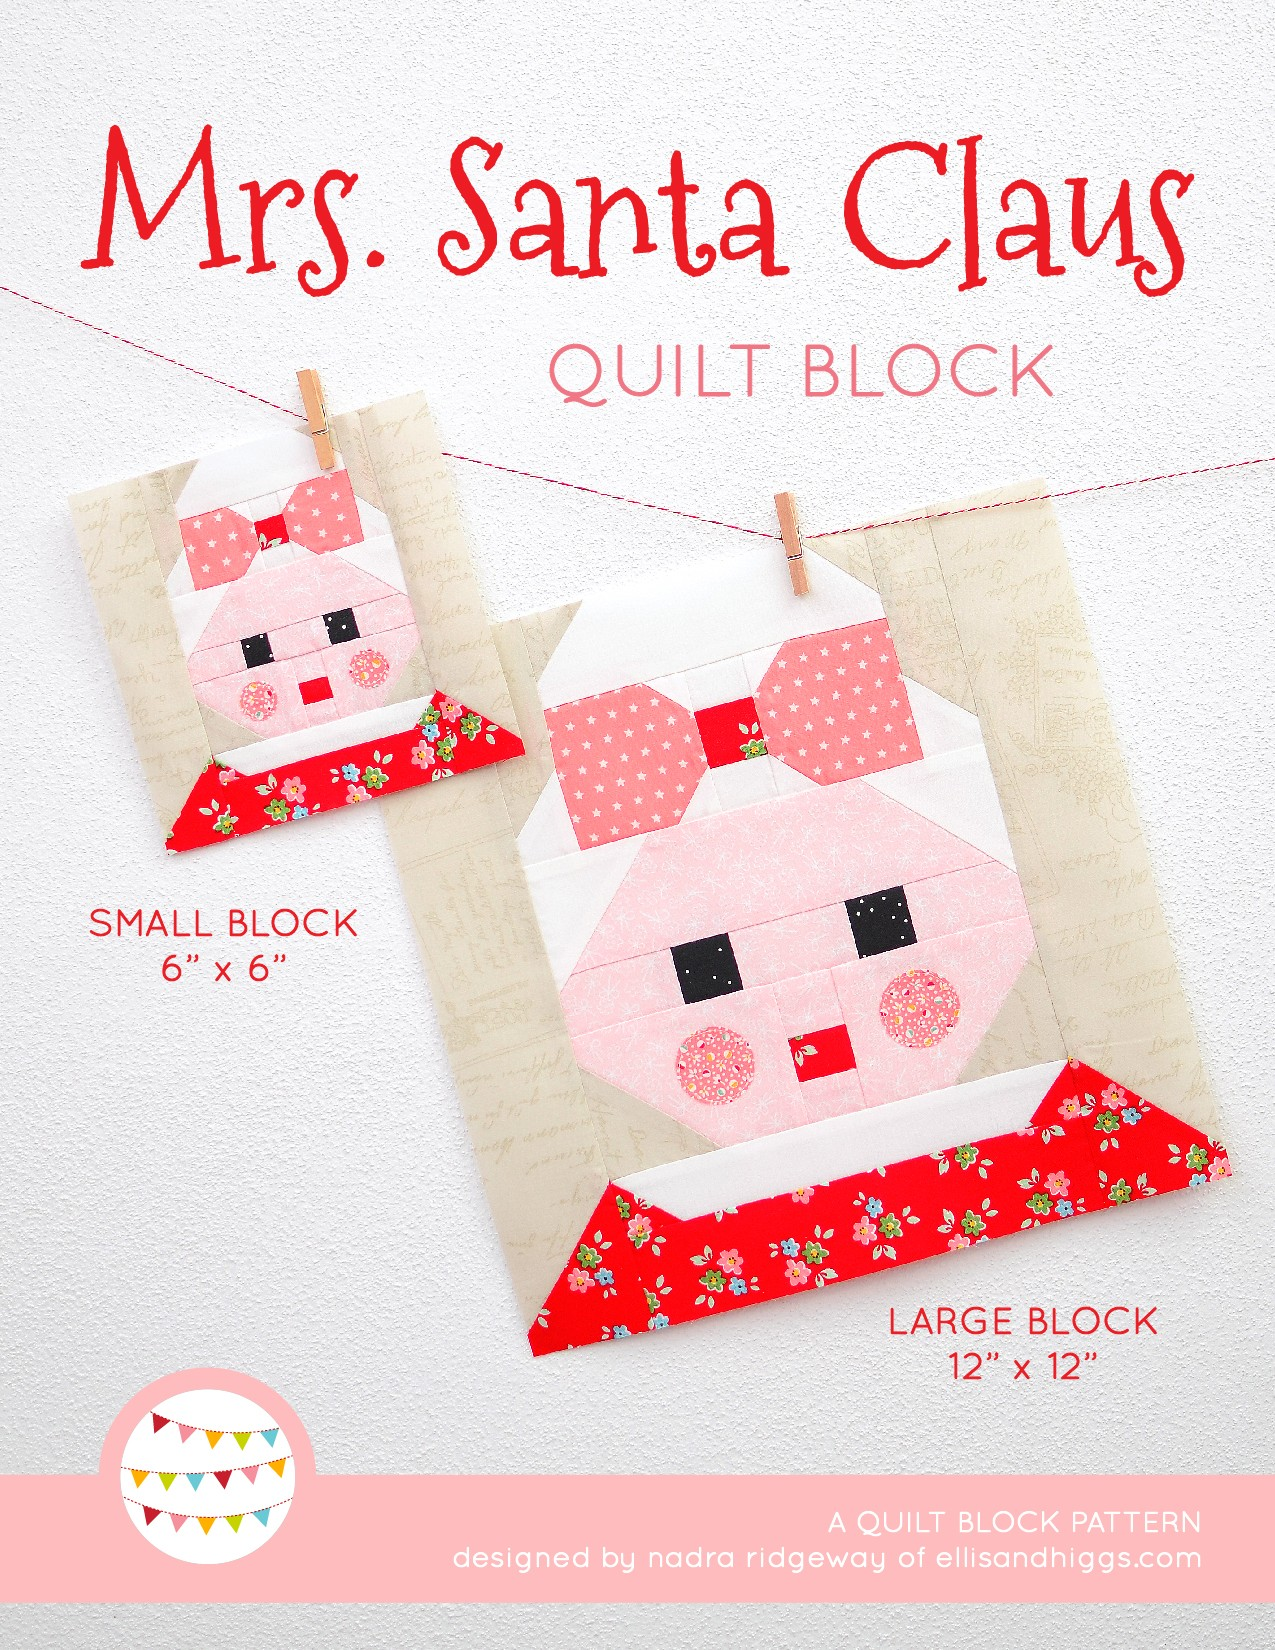 Mrs Santa Claus quilt block in two sizes hanging on a wall - Christmas quilt pattern